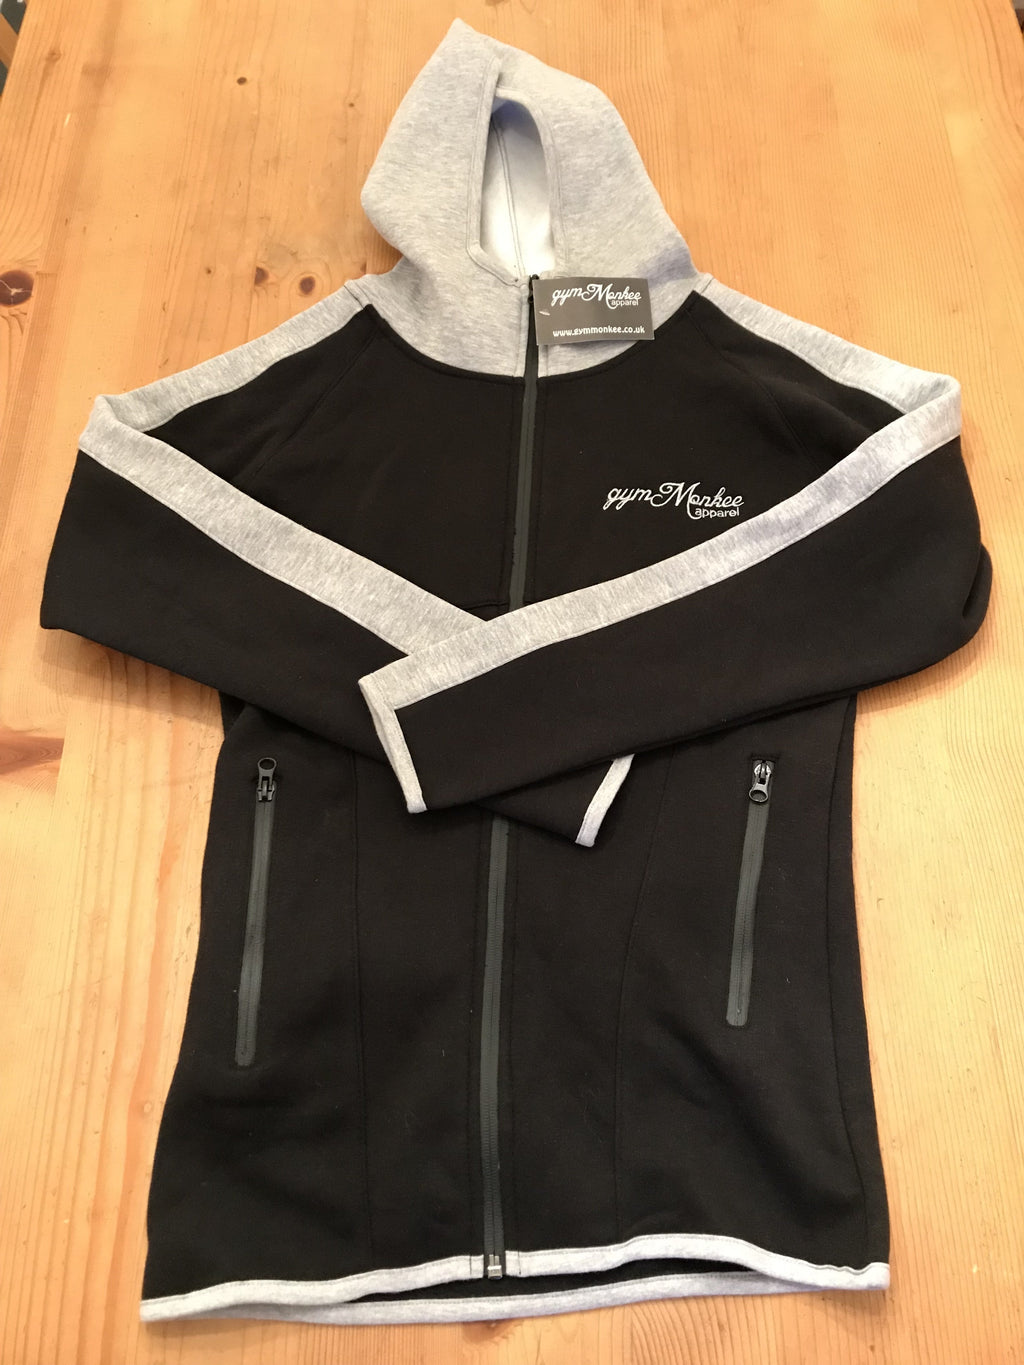 Gym Monkee - Black & Grey Zipped Hoodie